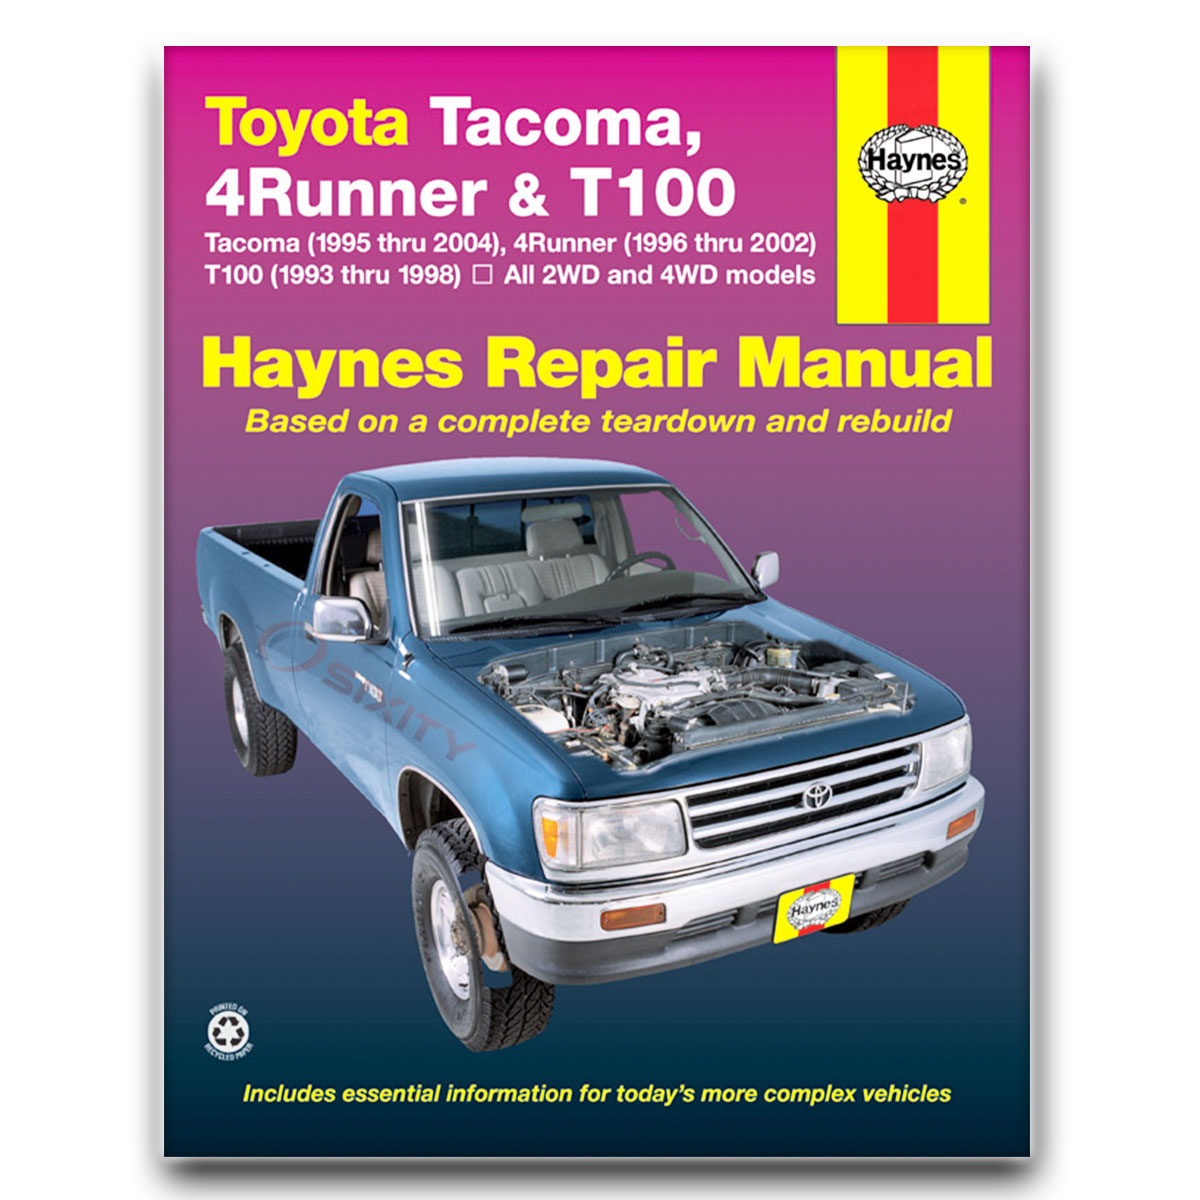 1993 toyota t100 owners manual